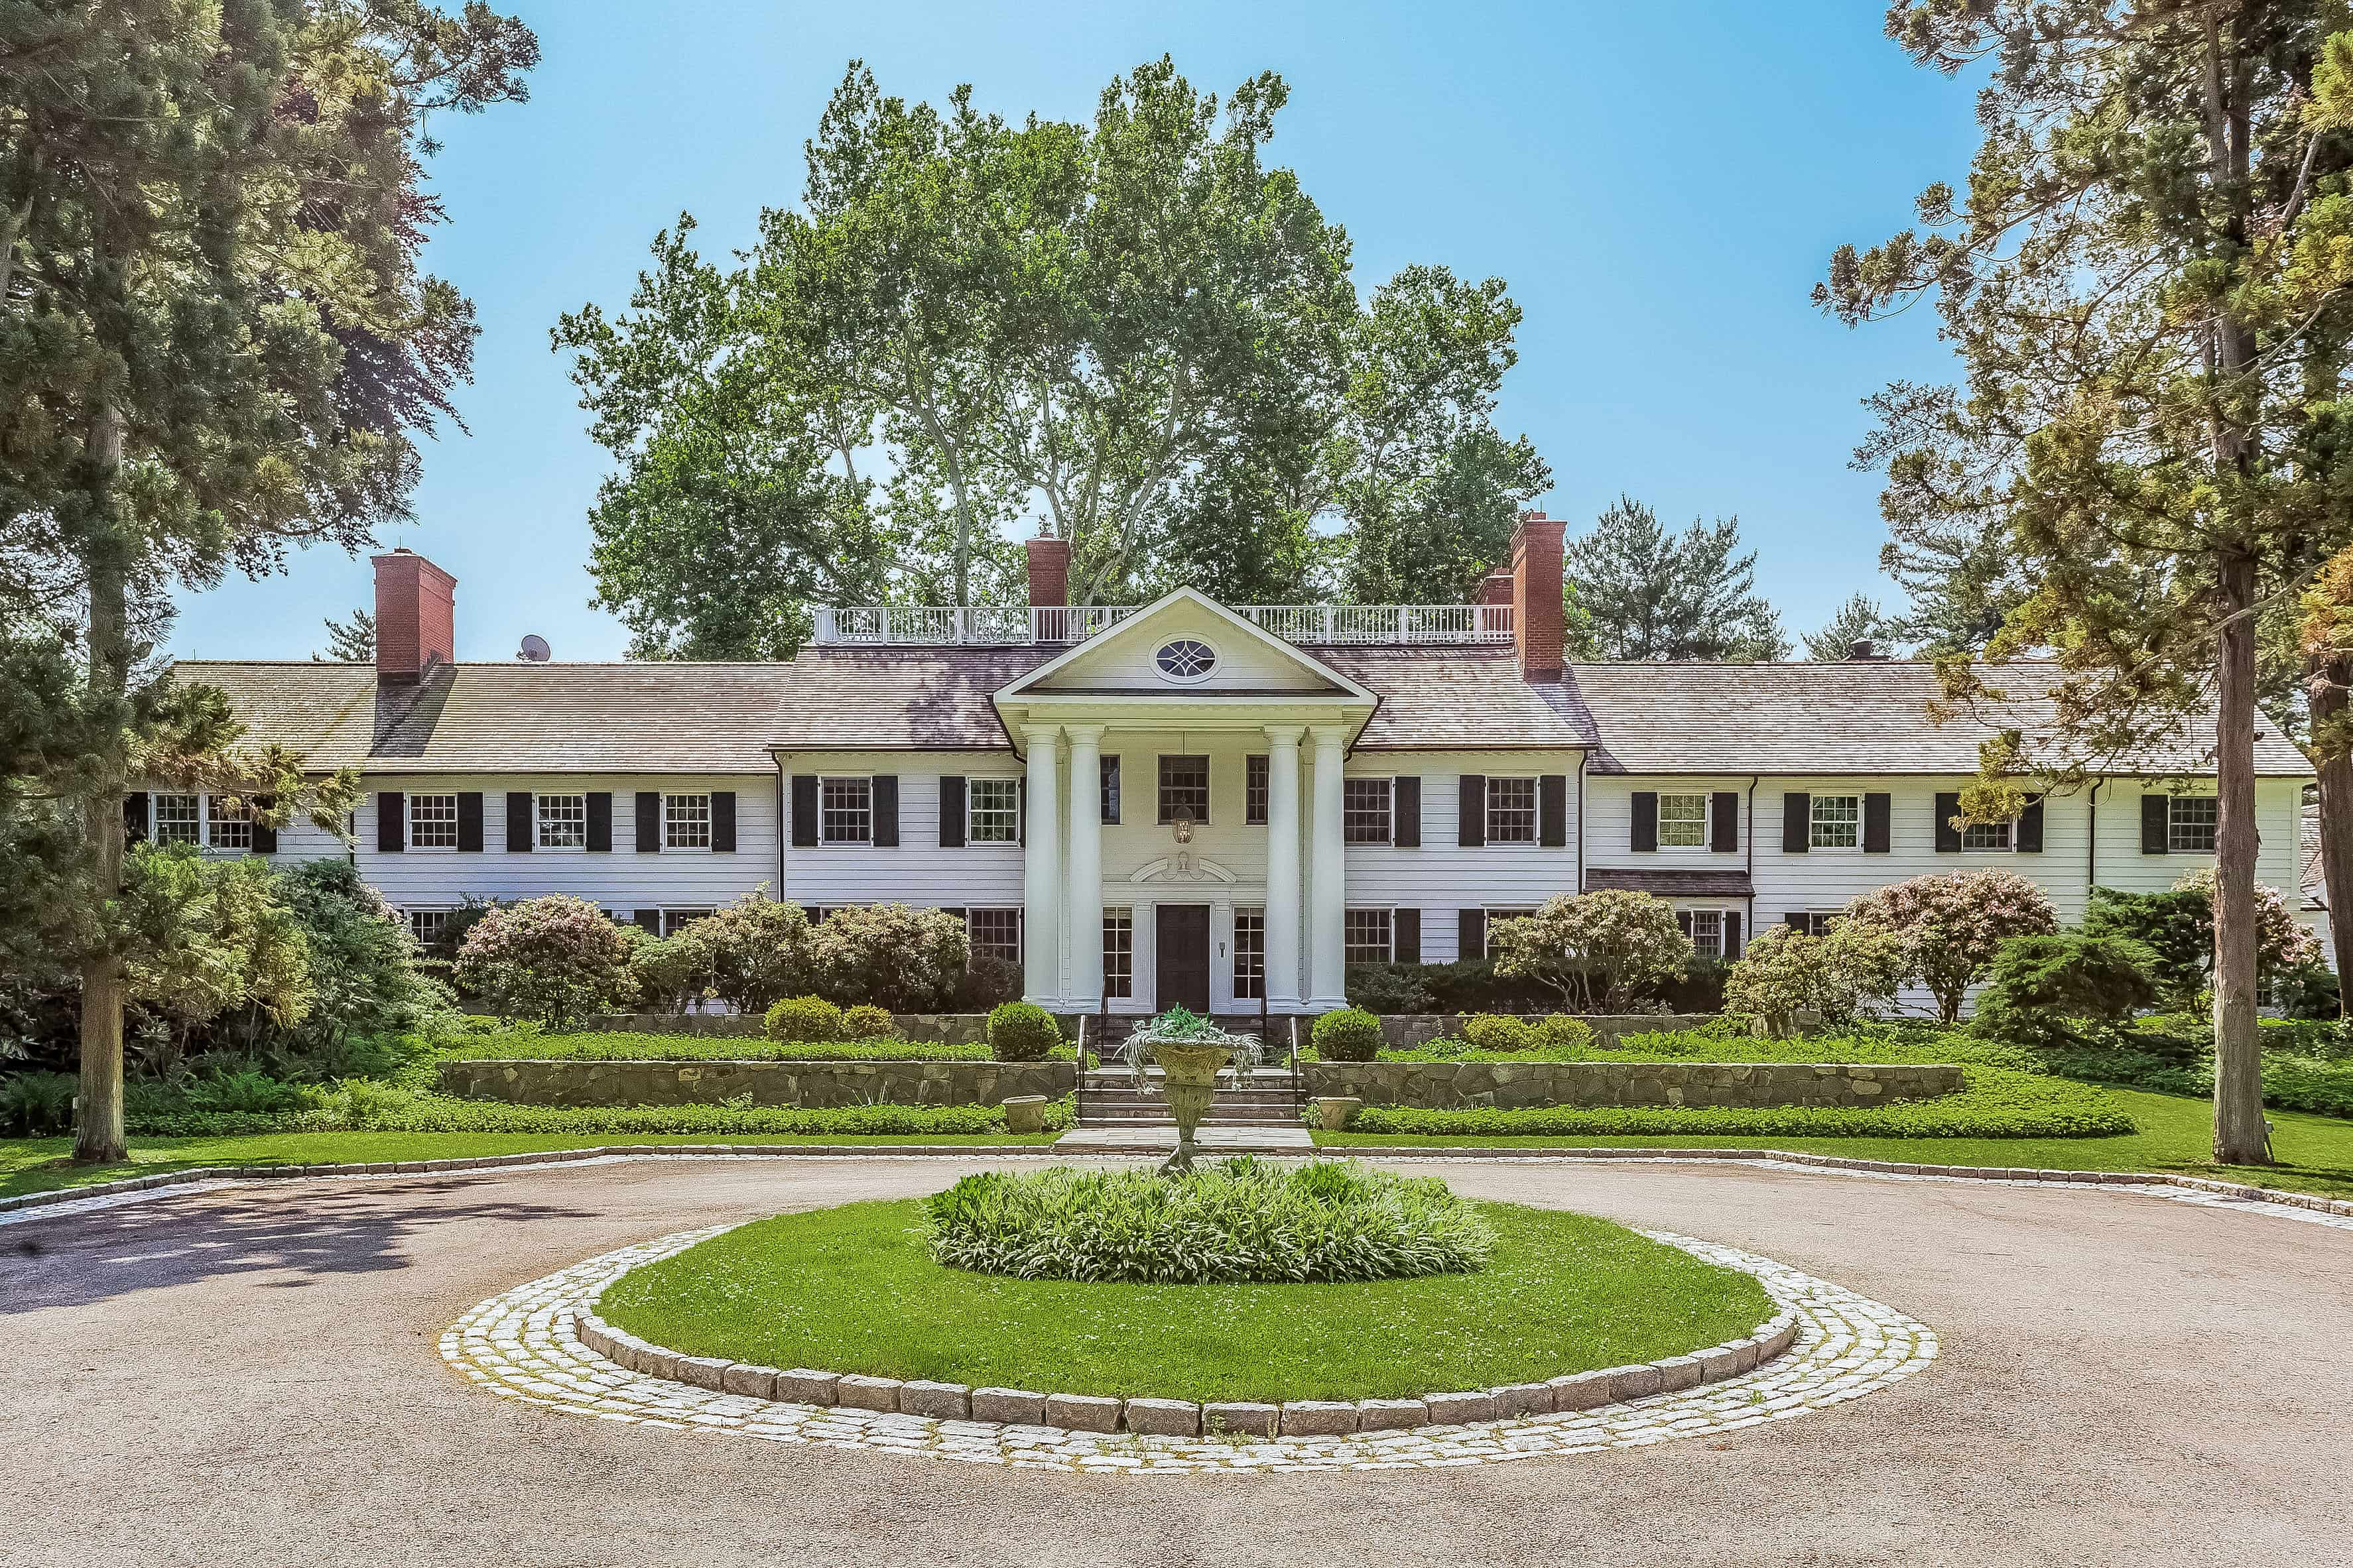 singles in cos cob 82 cat rock road, cos cob, ct is a single family property for sale the mls# is 97421 and sales price is $3,300,000 includes 6 beds , 60 baths and 9578 square feet.